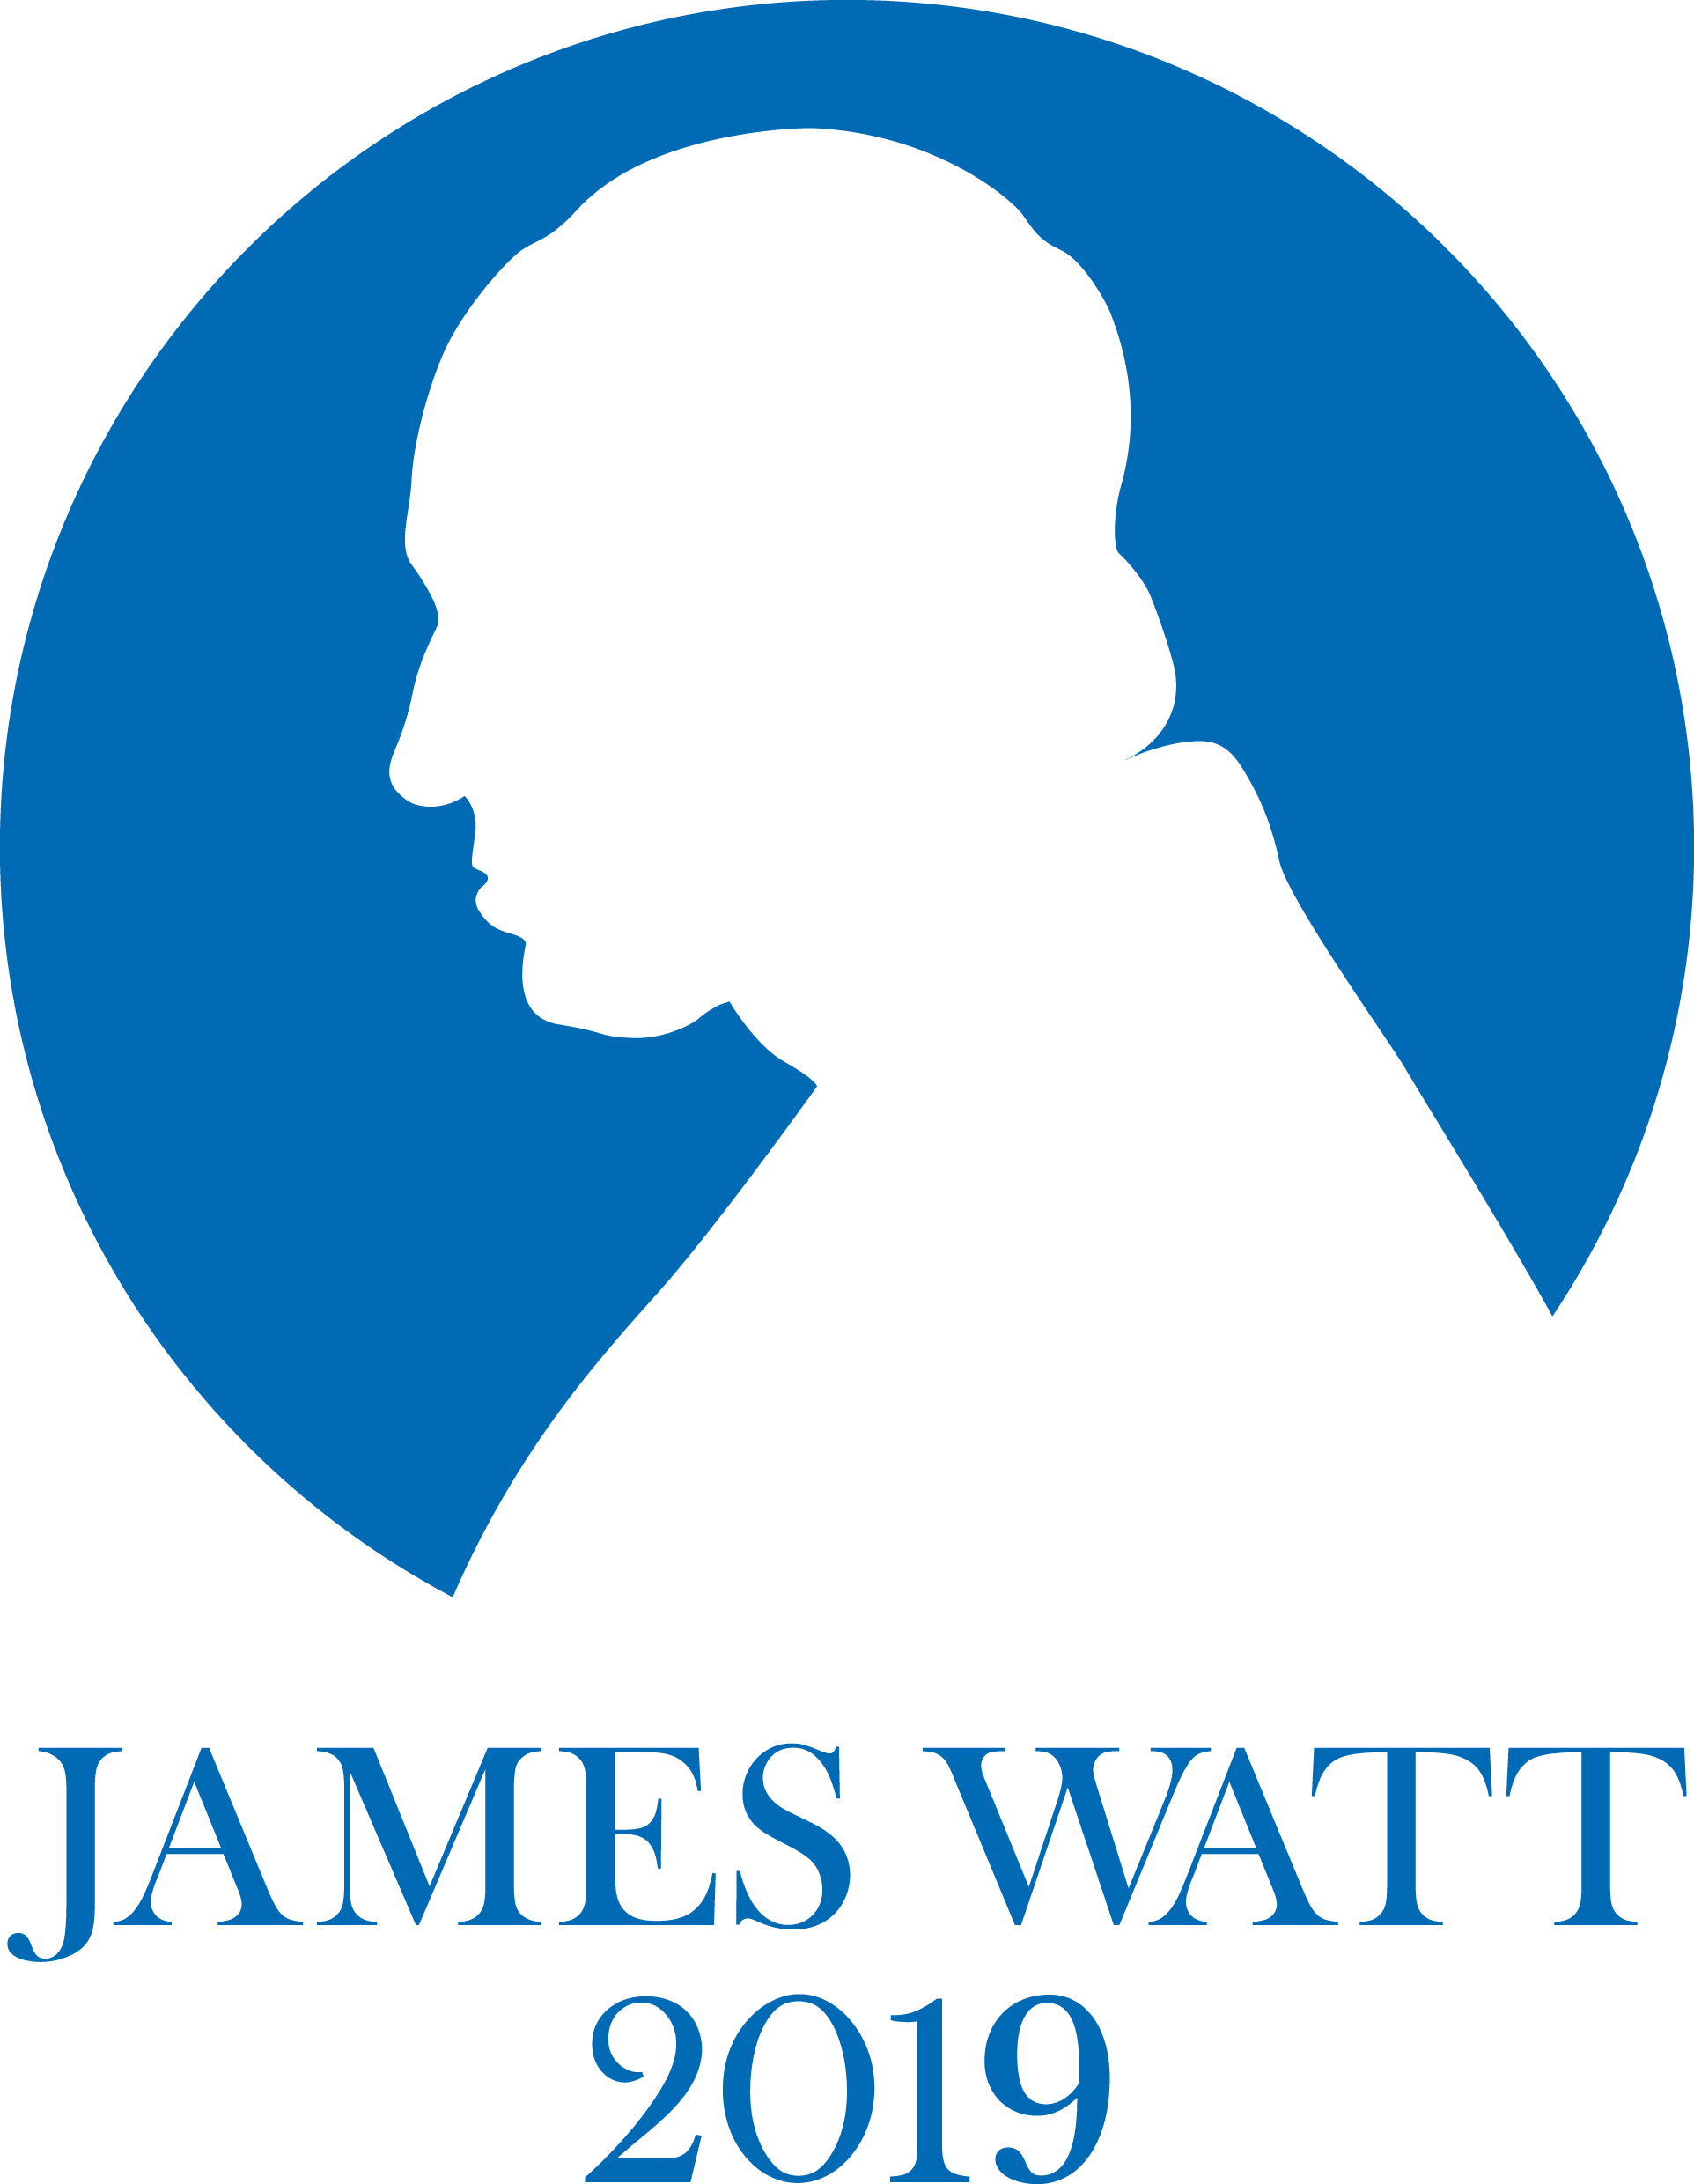 James Watt 2019 Exhibition logo